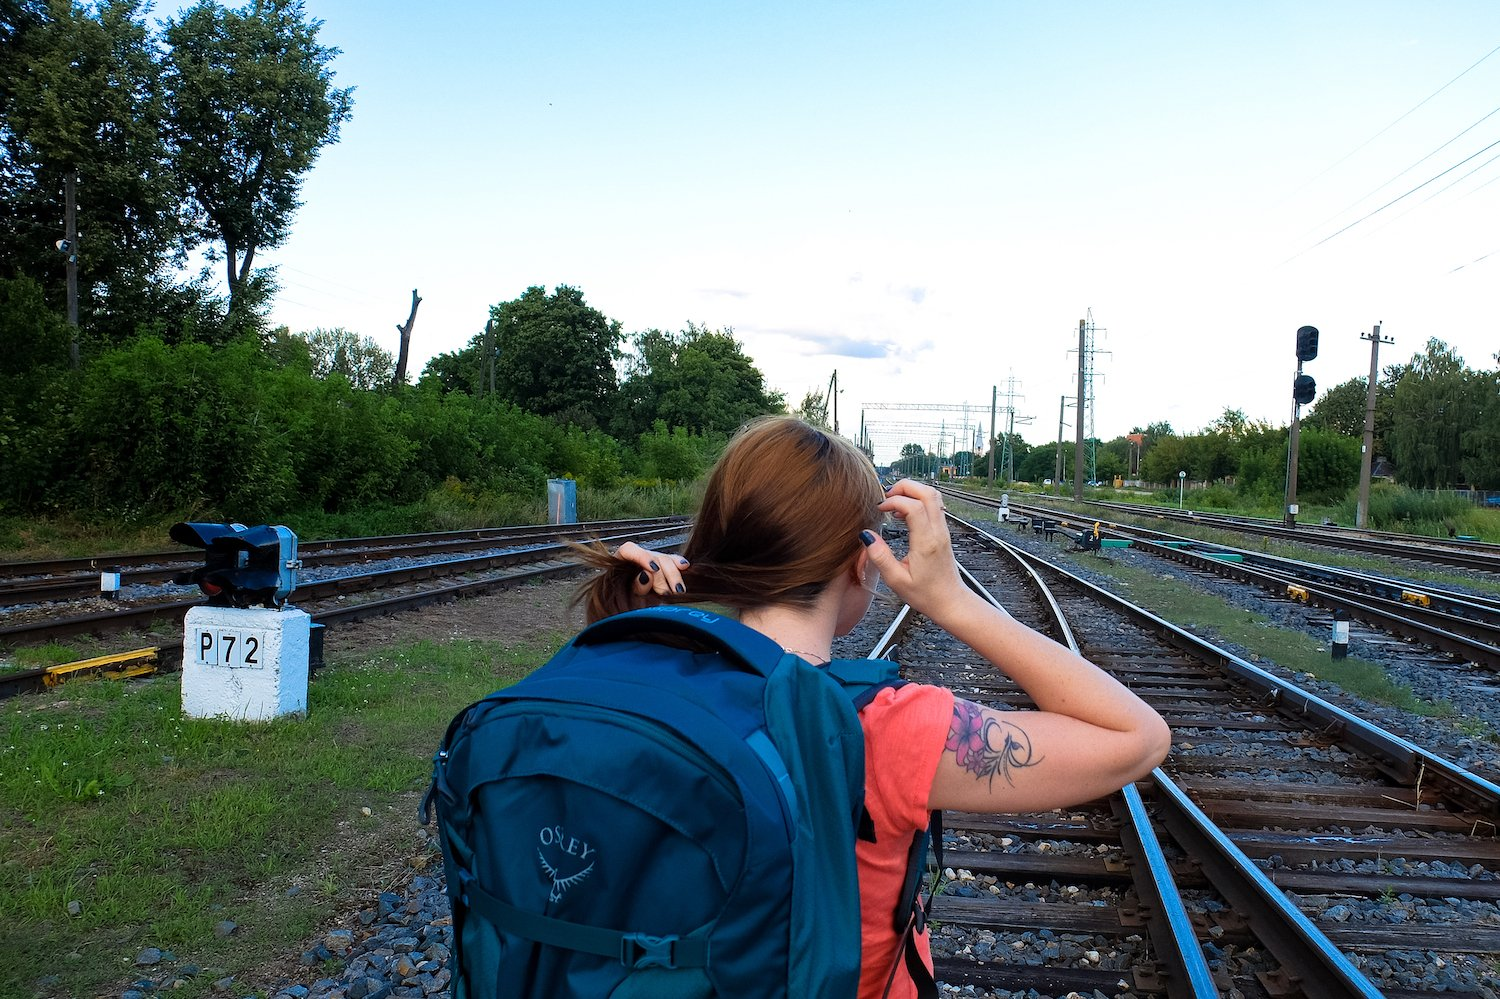 The author with an Osprey backpack in Riga